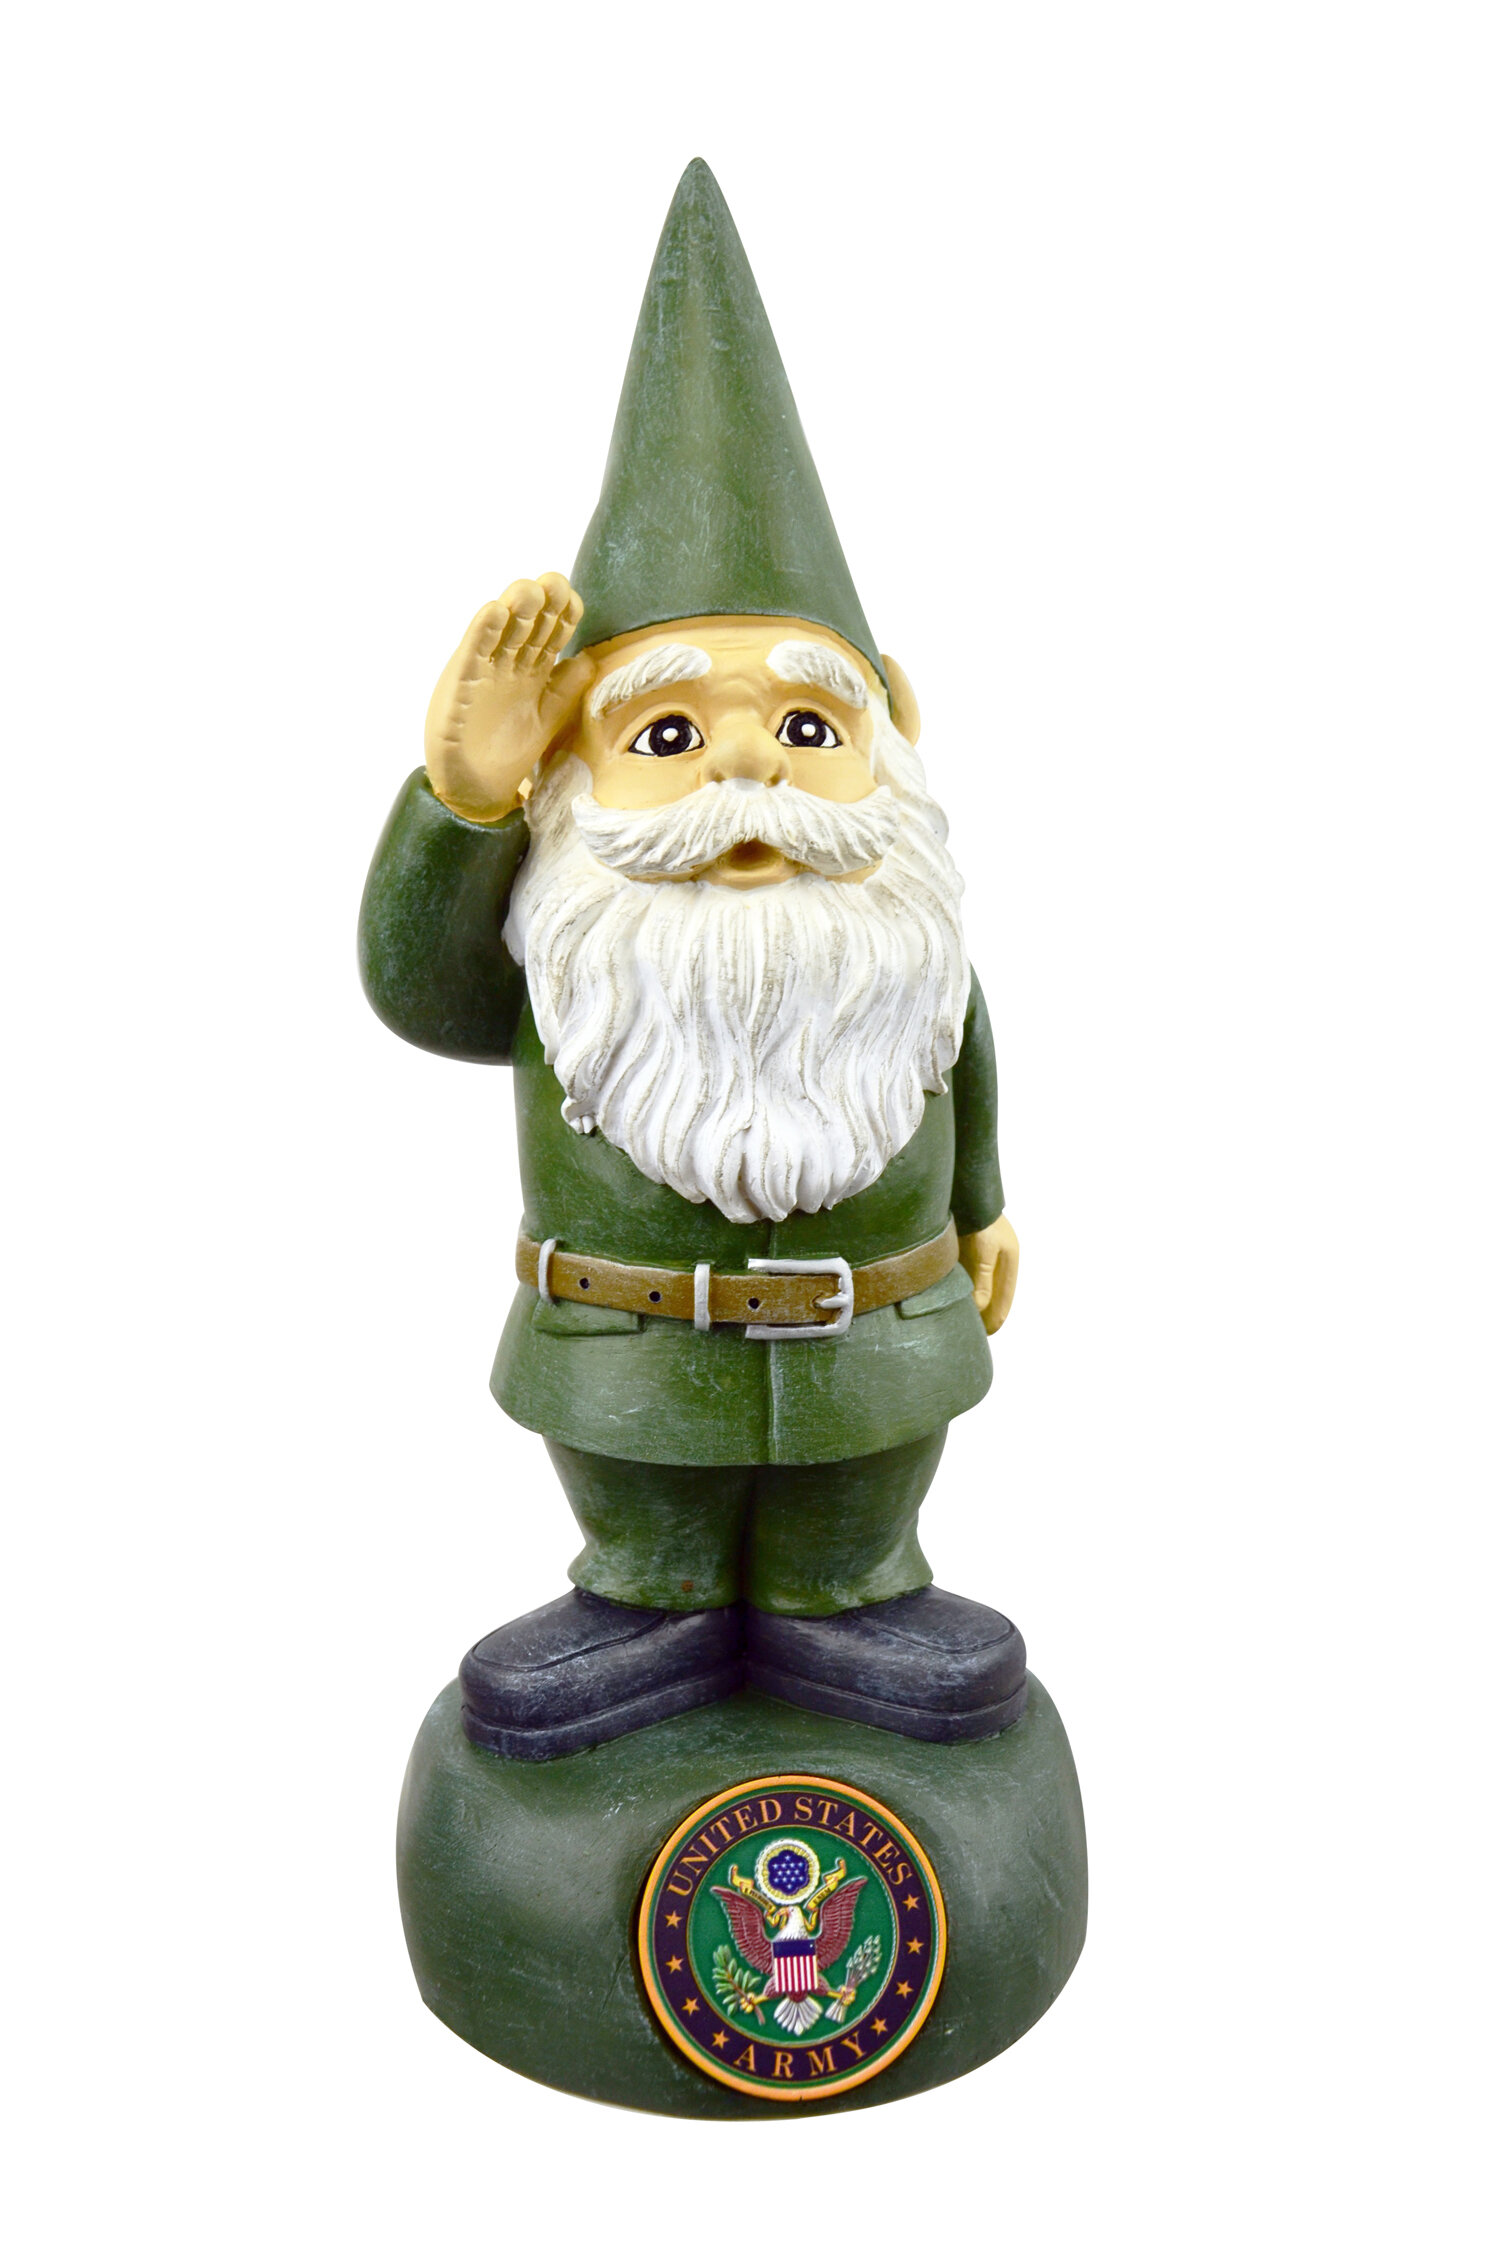 Rcs Gifts Gnome Army Statue Reviews Wayfair